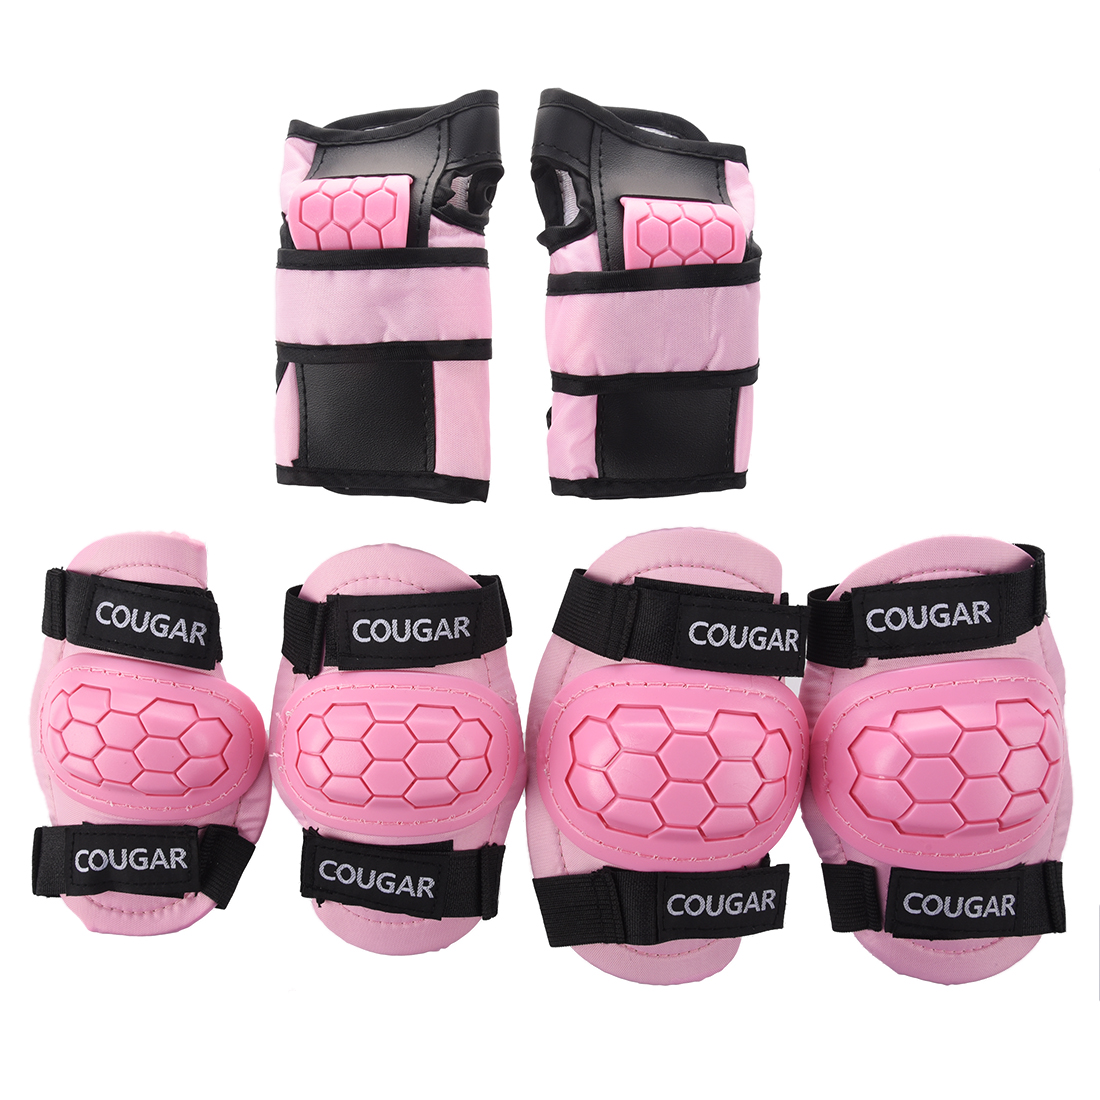 MUMIAN Boys Girls Childs Children Skate Cycle Knee Set Elbow Wrist Safety Pads Kids